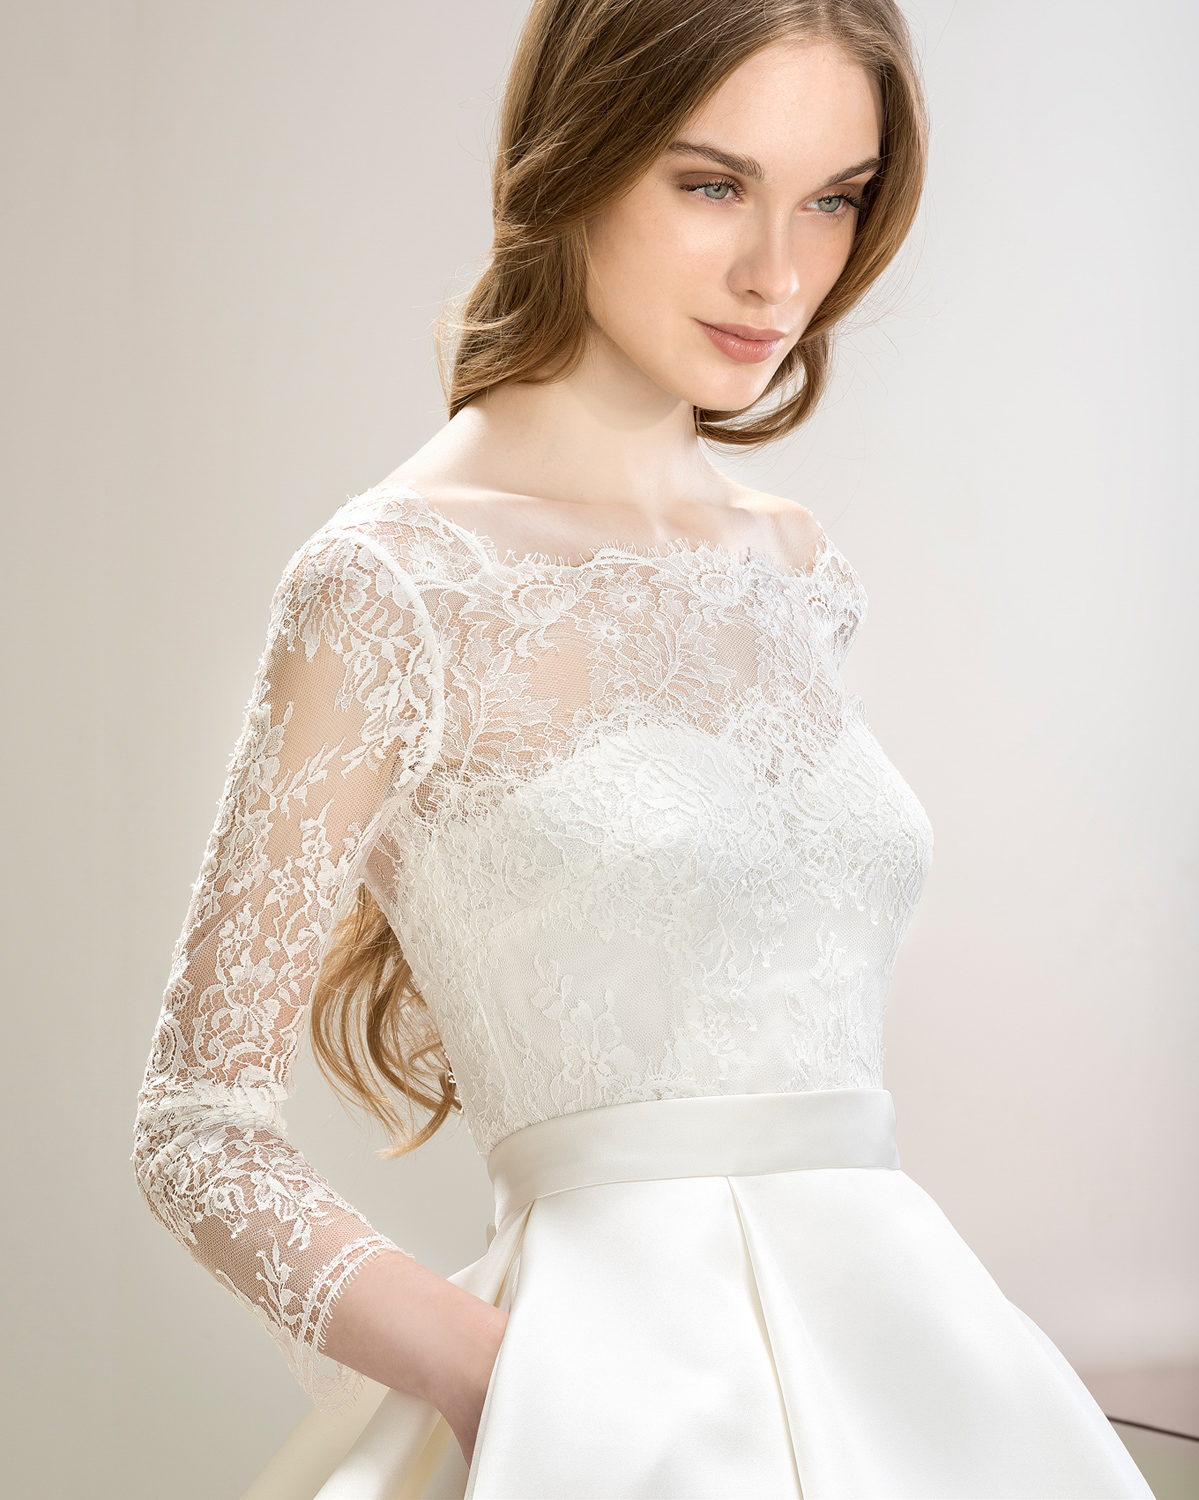 The Mirtilli Collection From Jesus Peiro – Now Available In The UK (Bridal Fashion Fashion & Beauty Get Inspired )